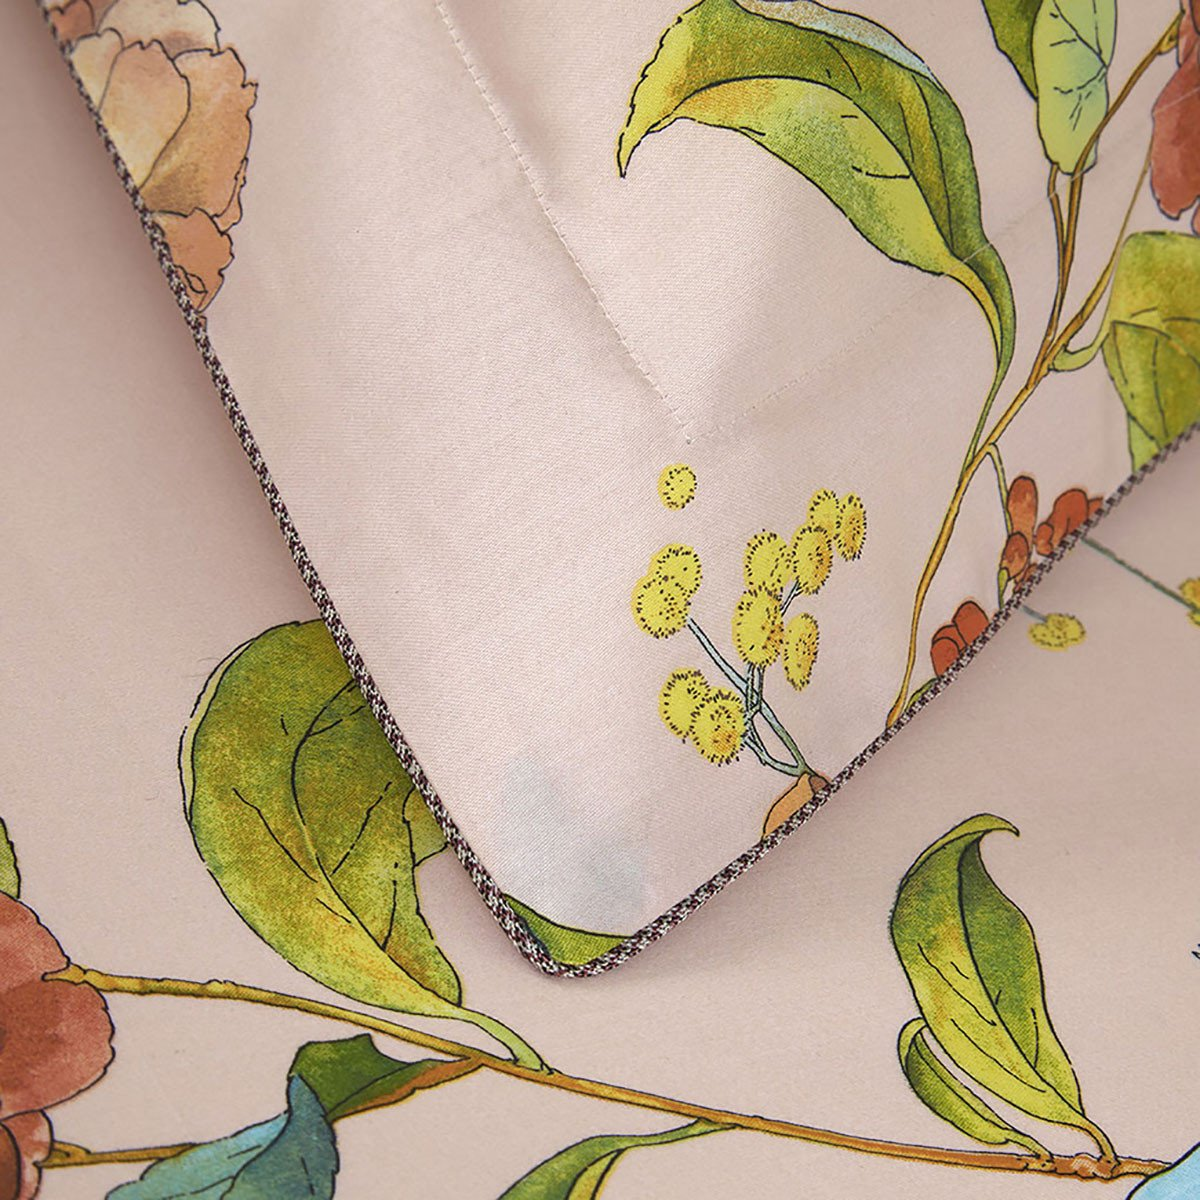 Fig Linens - Yves Delorme Bedding - Bagatelle Sham with Piping